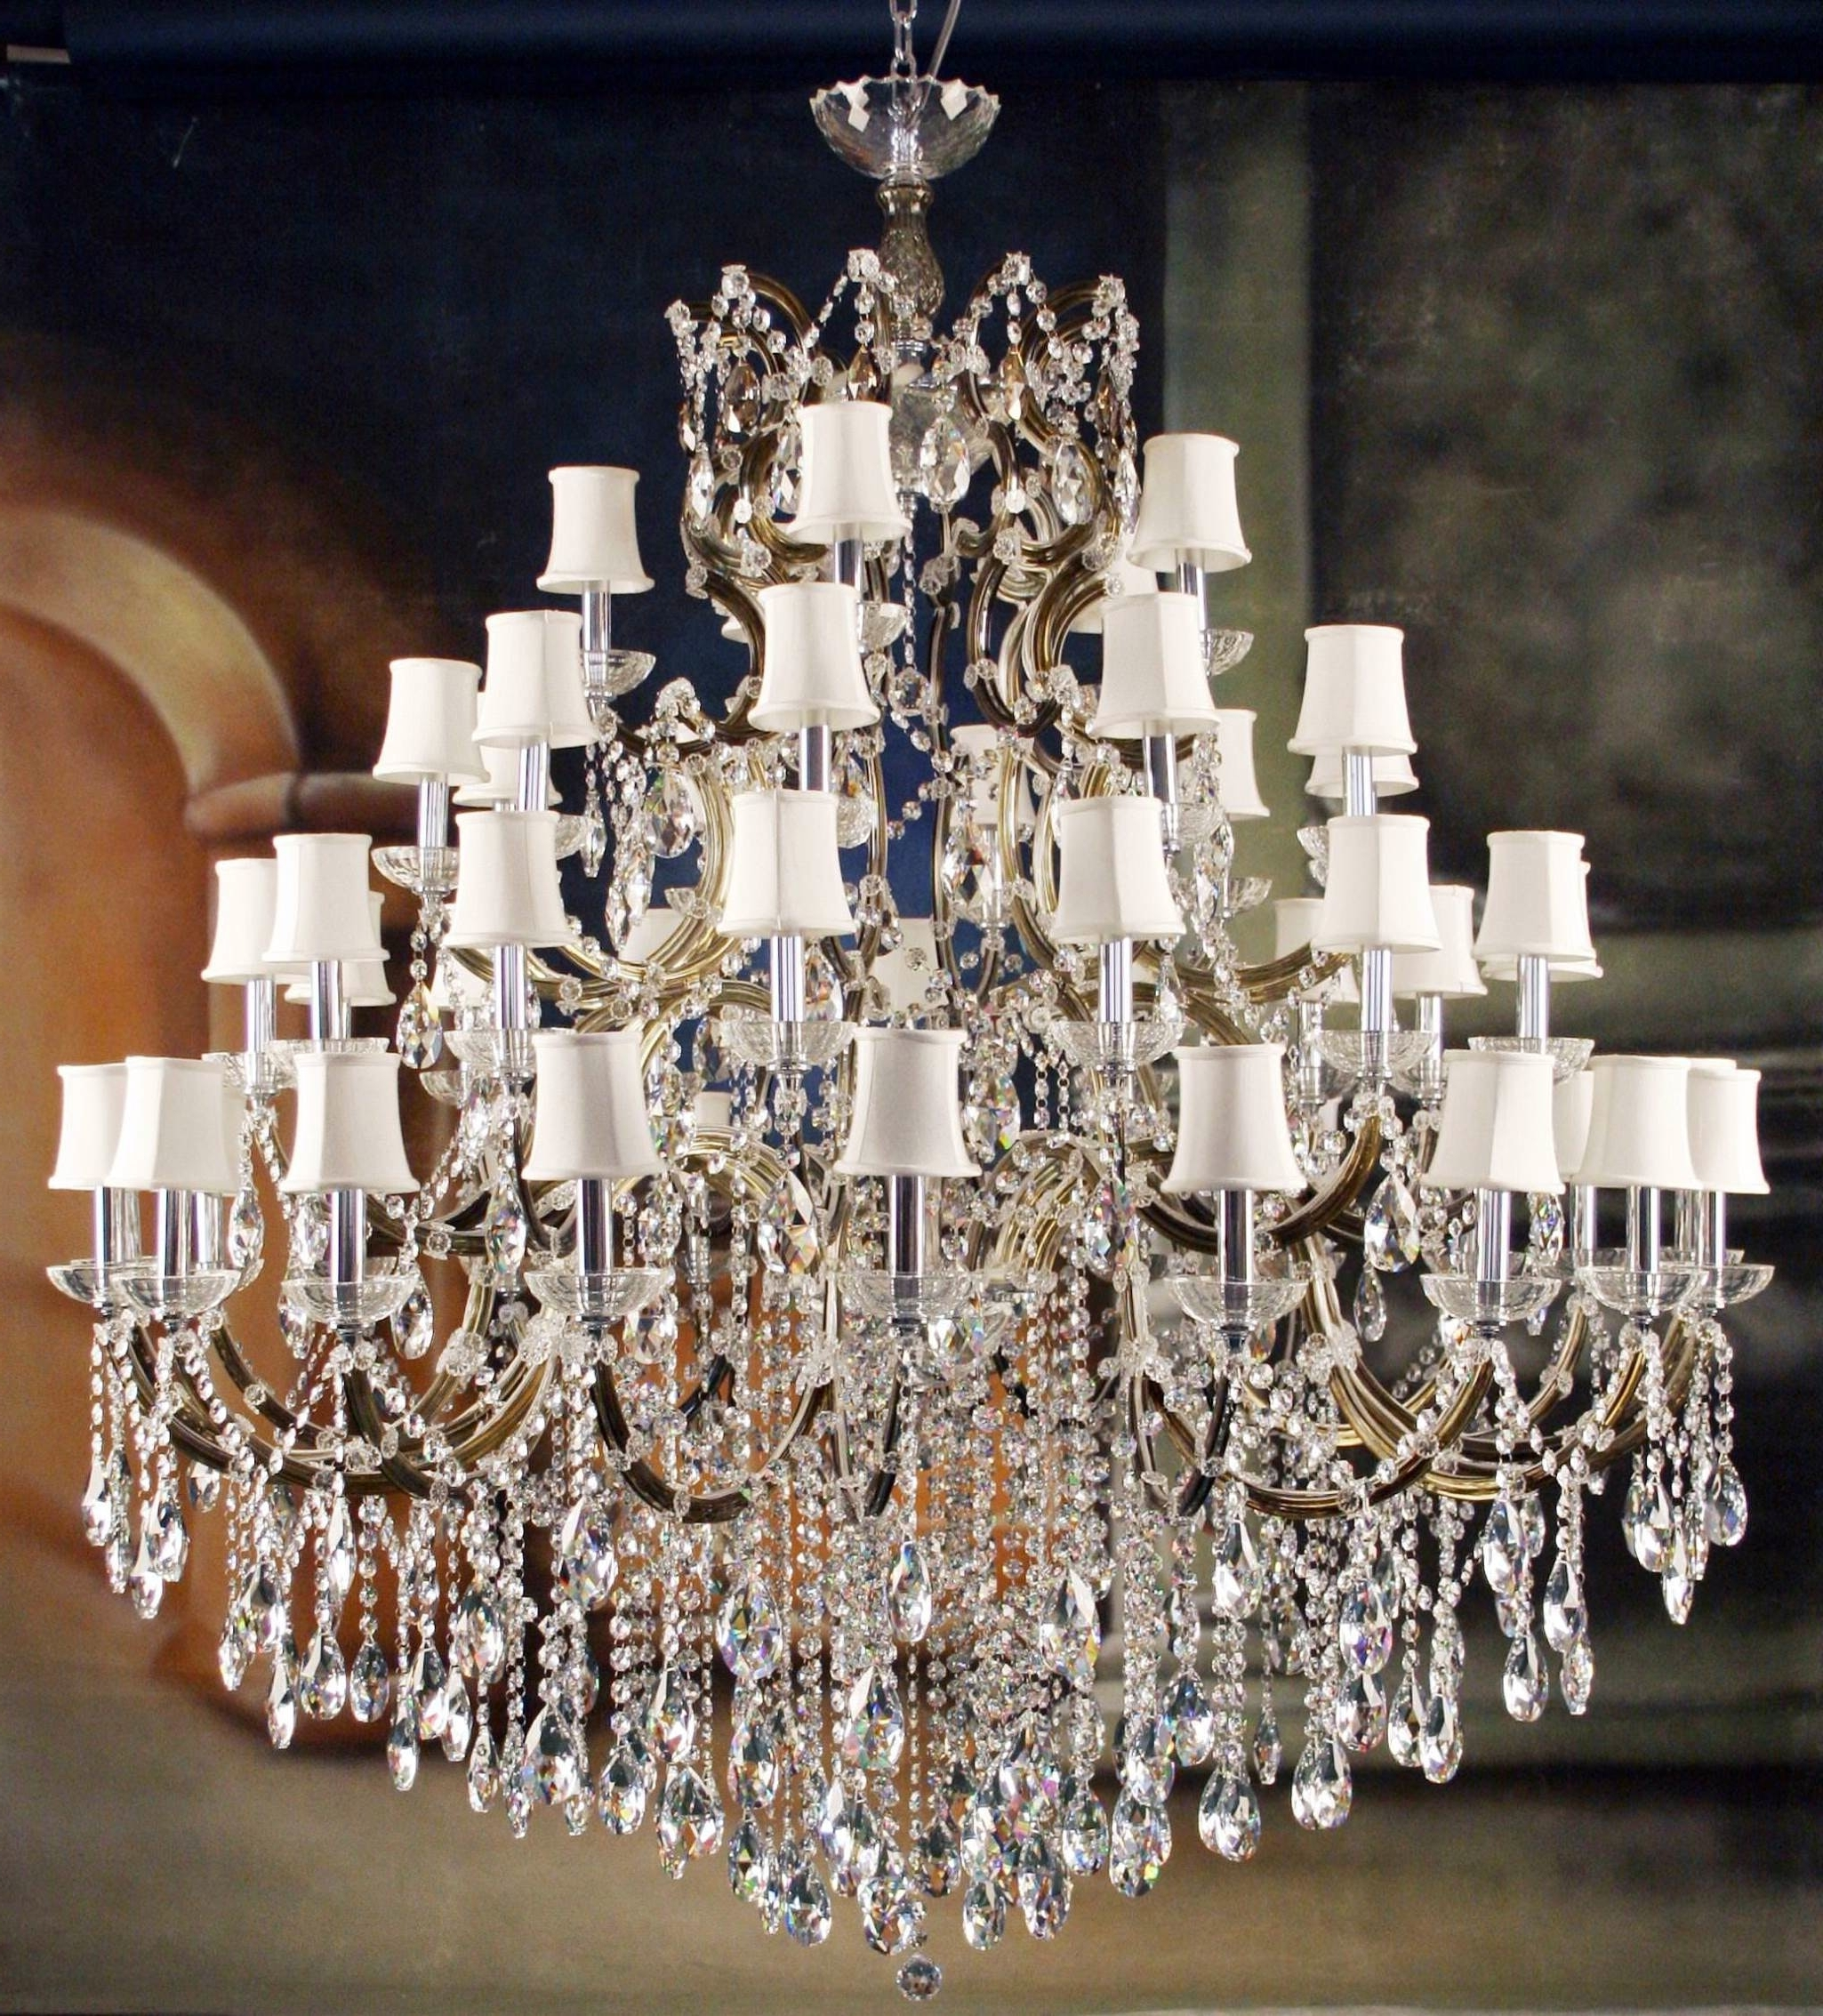 Fashionable Light : Fancy Chandelier And Matching Wall Lights For Your Christmas Throughout Bathroom Chandelier Wall Lights (View 13 of 20)